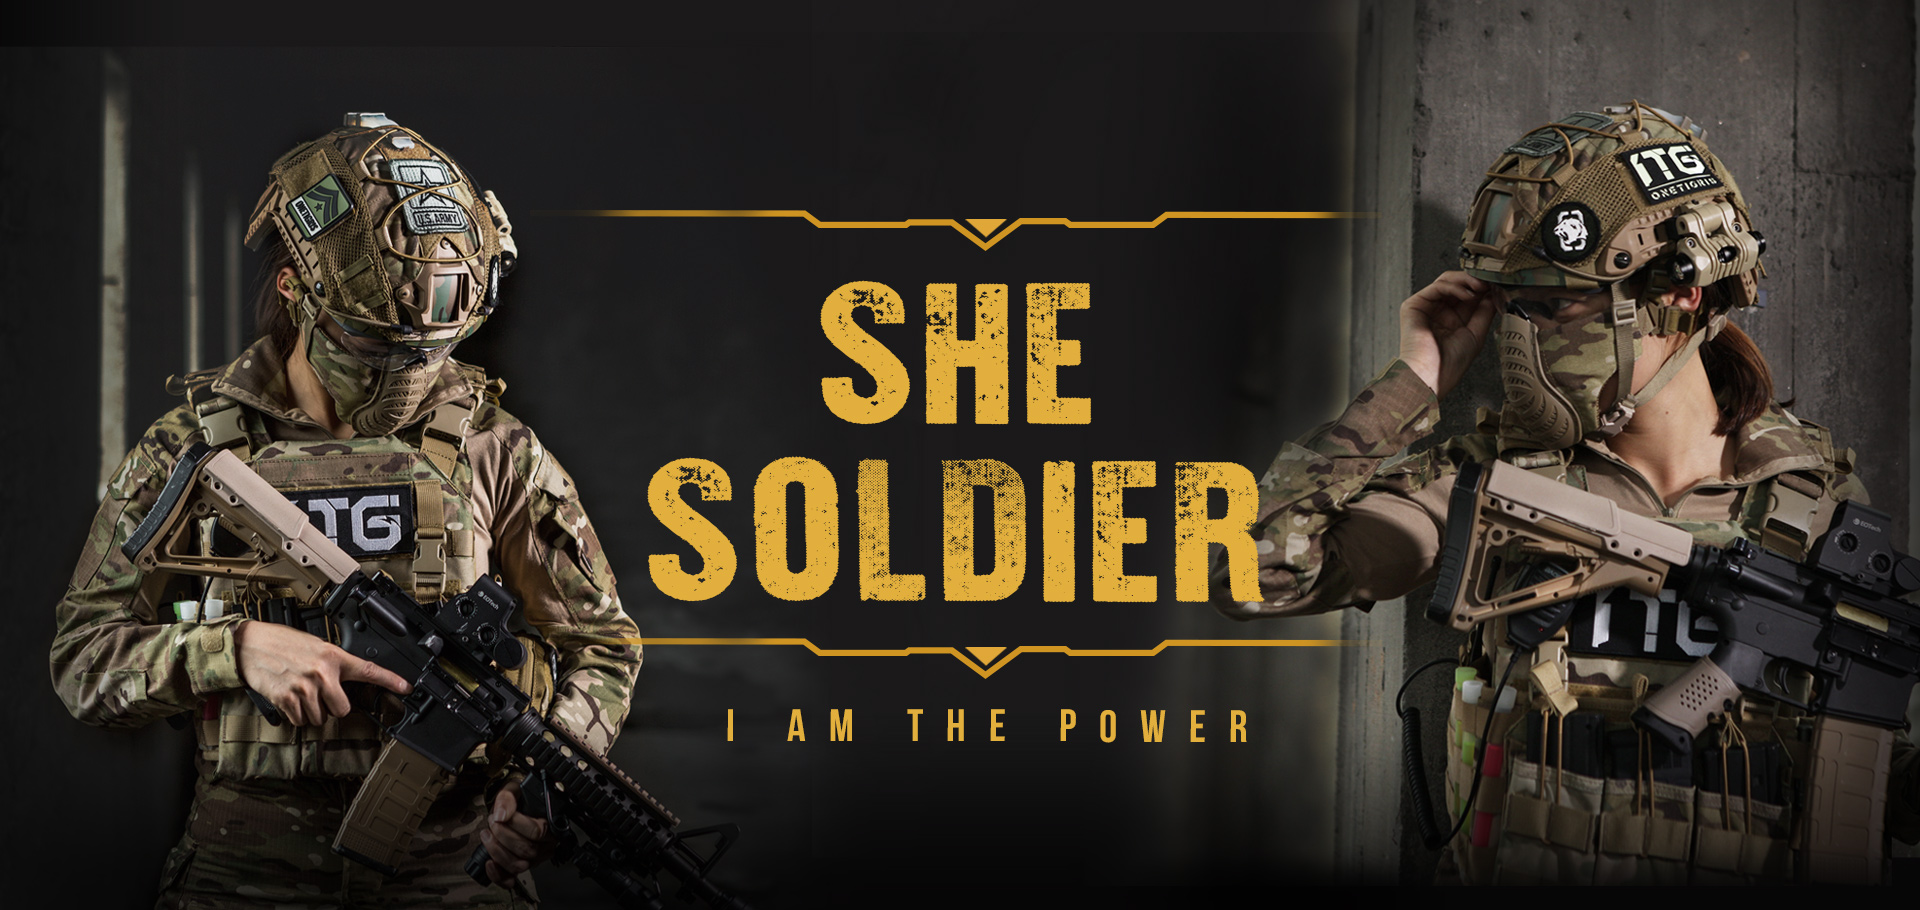 SHE SOLDIER